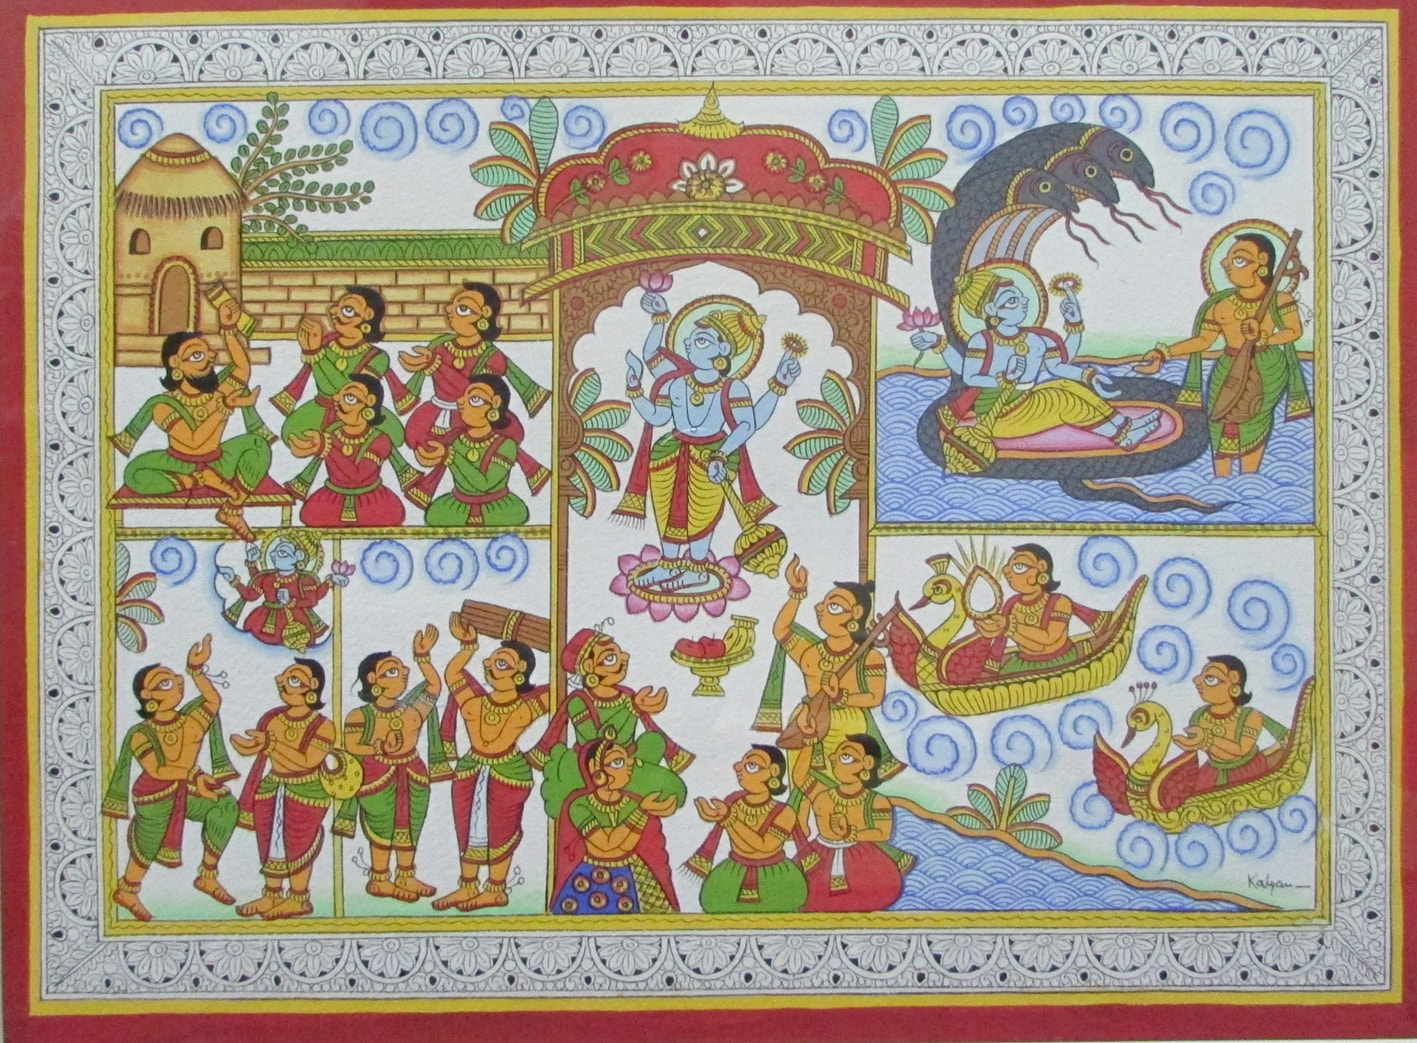 A phad painting depicting the Satyanarayan Katha.